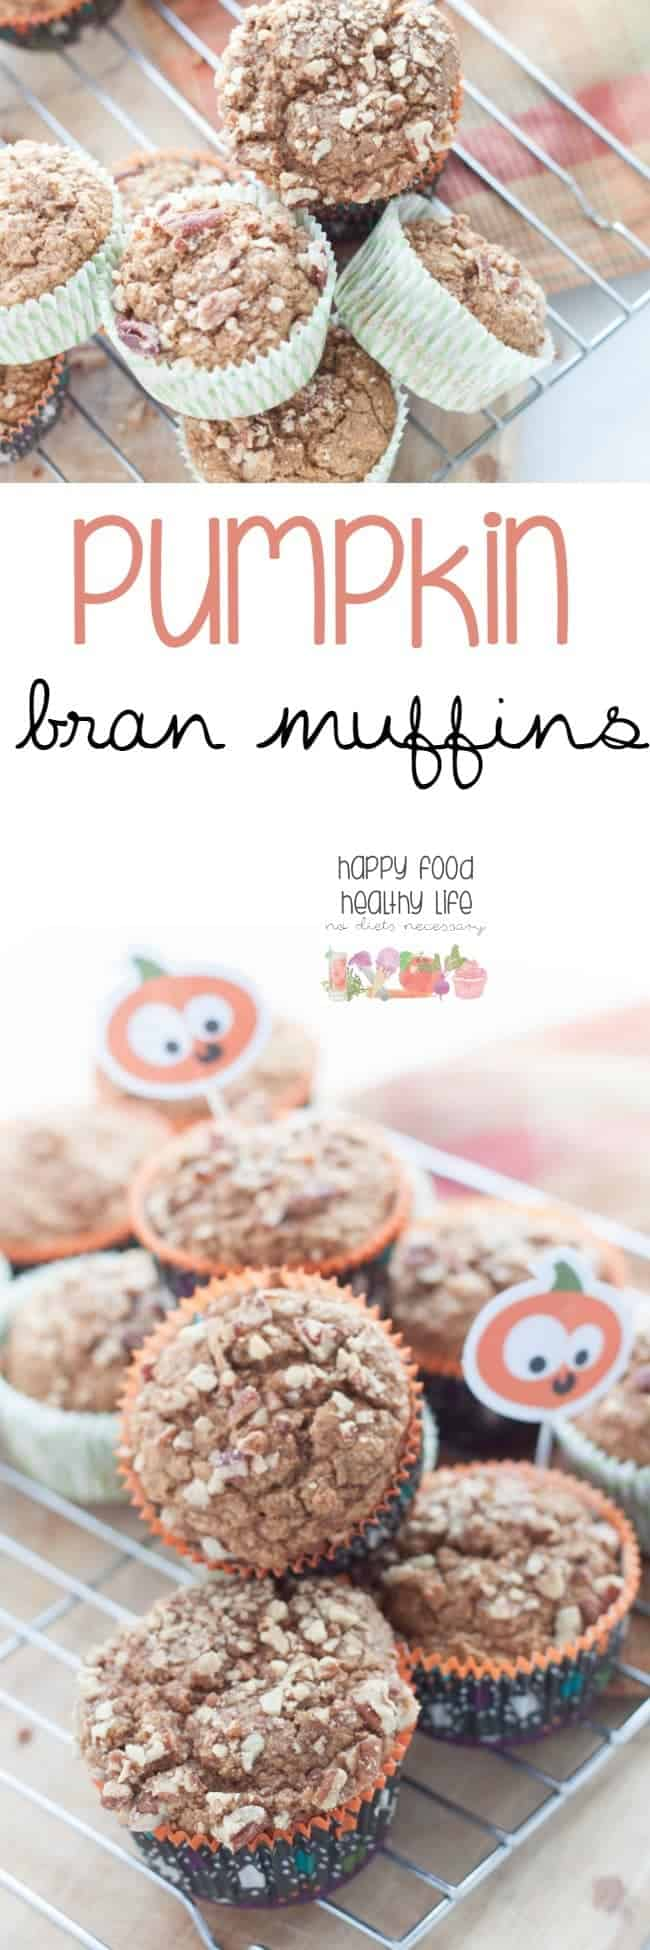 Pumpkin Bran Muffins - These muffins are the perfect fall-inspired healthy snack or breakfast